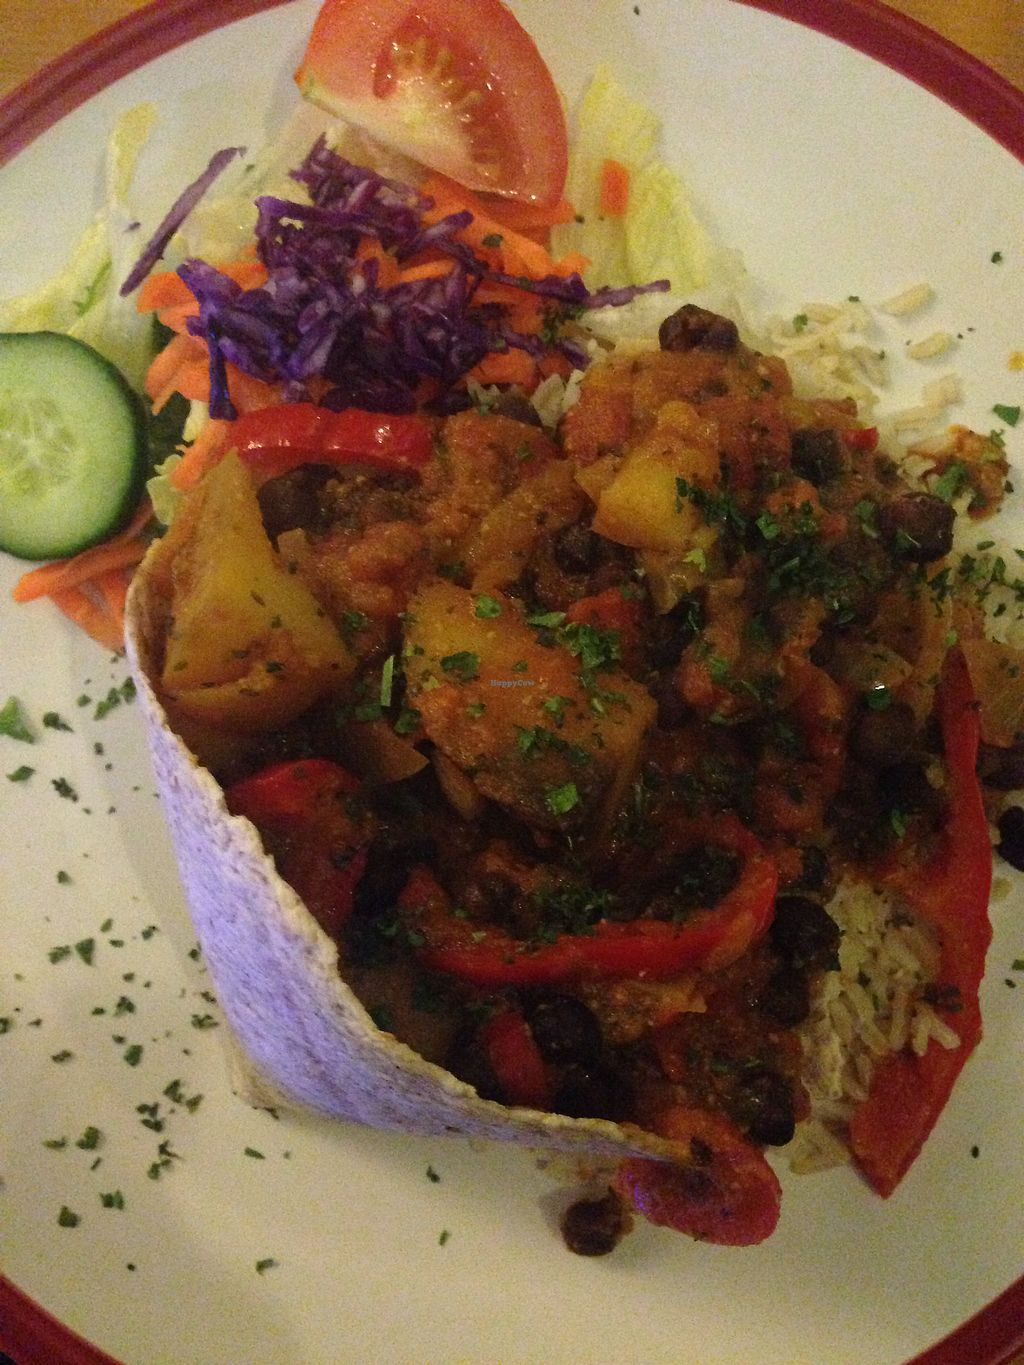 """Photo of Rainbow Vegetarian Cafe  by <a href=""""/members/profile/EIIie"""">EIIie</a> <br/>Curry <br/> August 1, 2017  - <a href='/contact/abuse/image/630/287524'>Report</a>"""